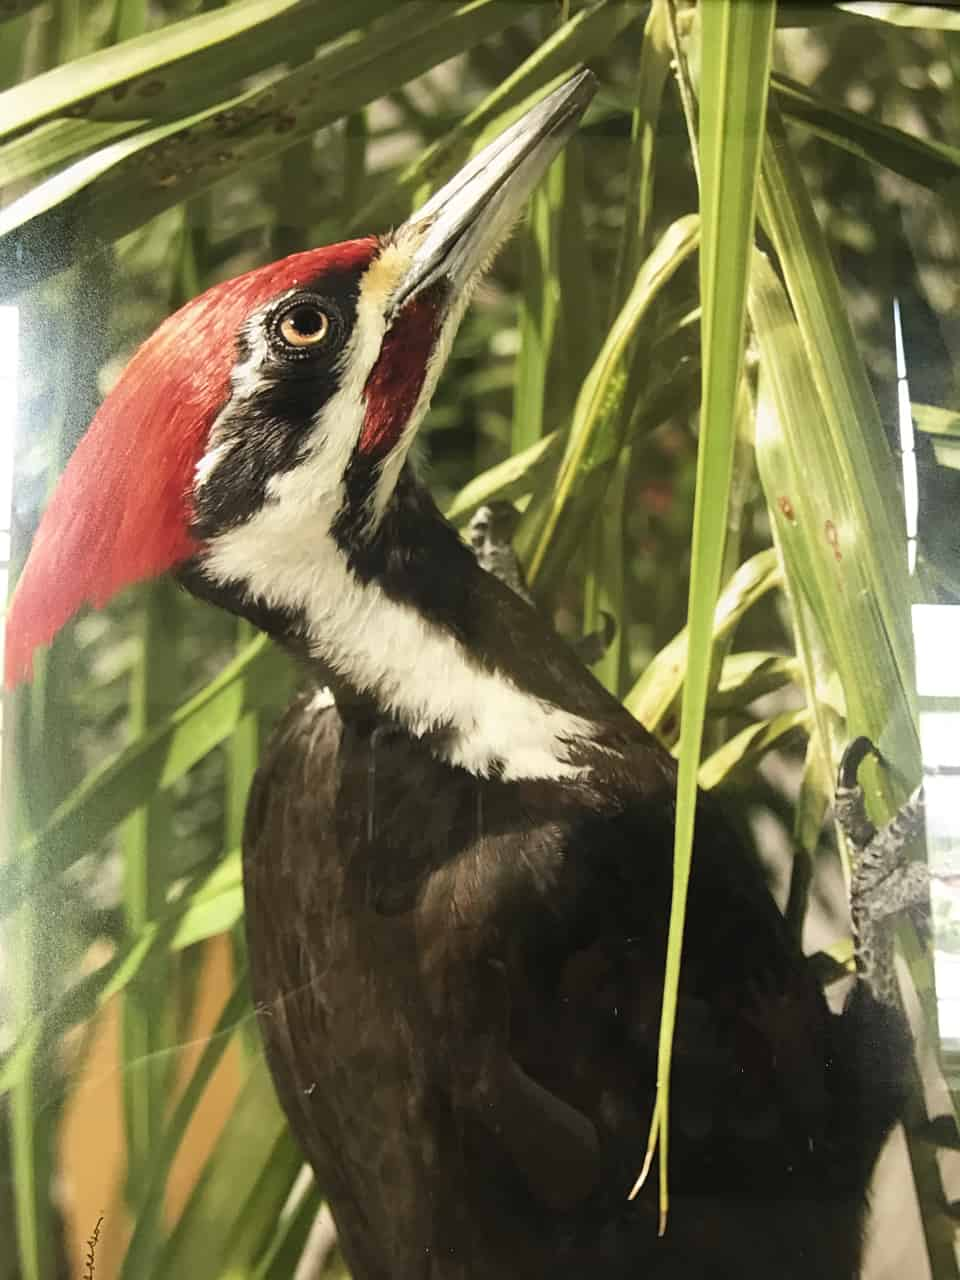 Bernard Isaacson's 'Pileated Woodpecker' makings a striking show on a warm day. Photo by Kate Abbott